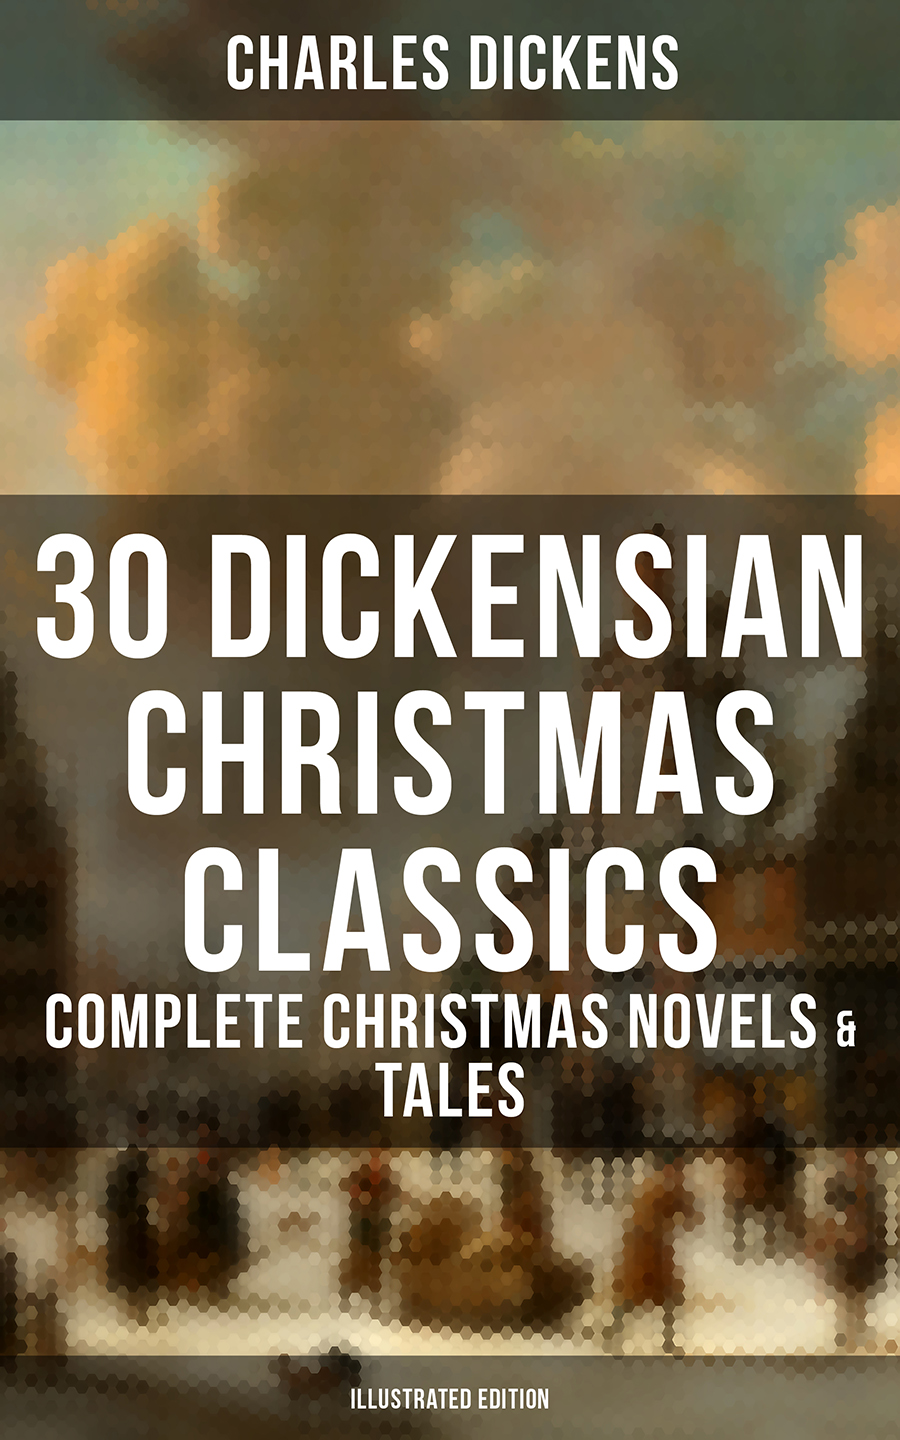 Charles 1812-1870 Dickens 30 DICKENSIAN CHRISTMAS CLASSICS: Complete Christmas Novels & Tales (Illustrated Edition) цена